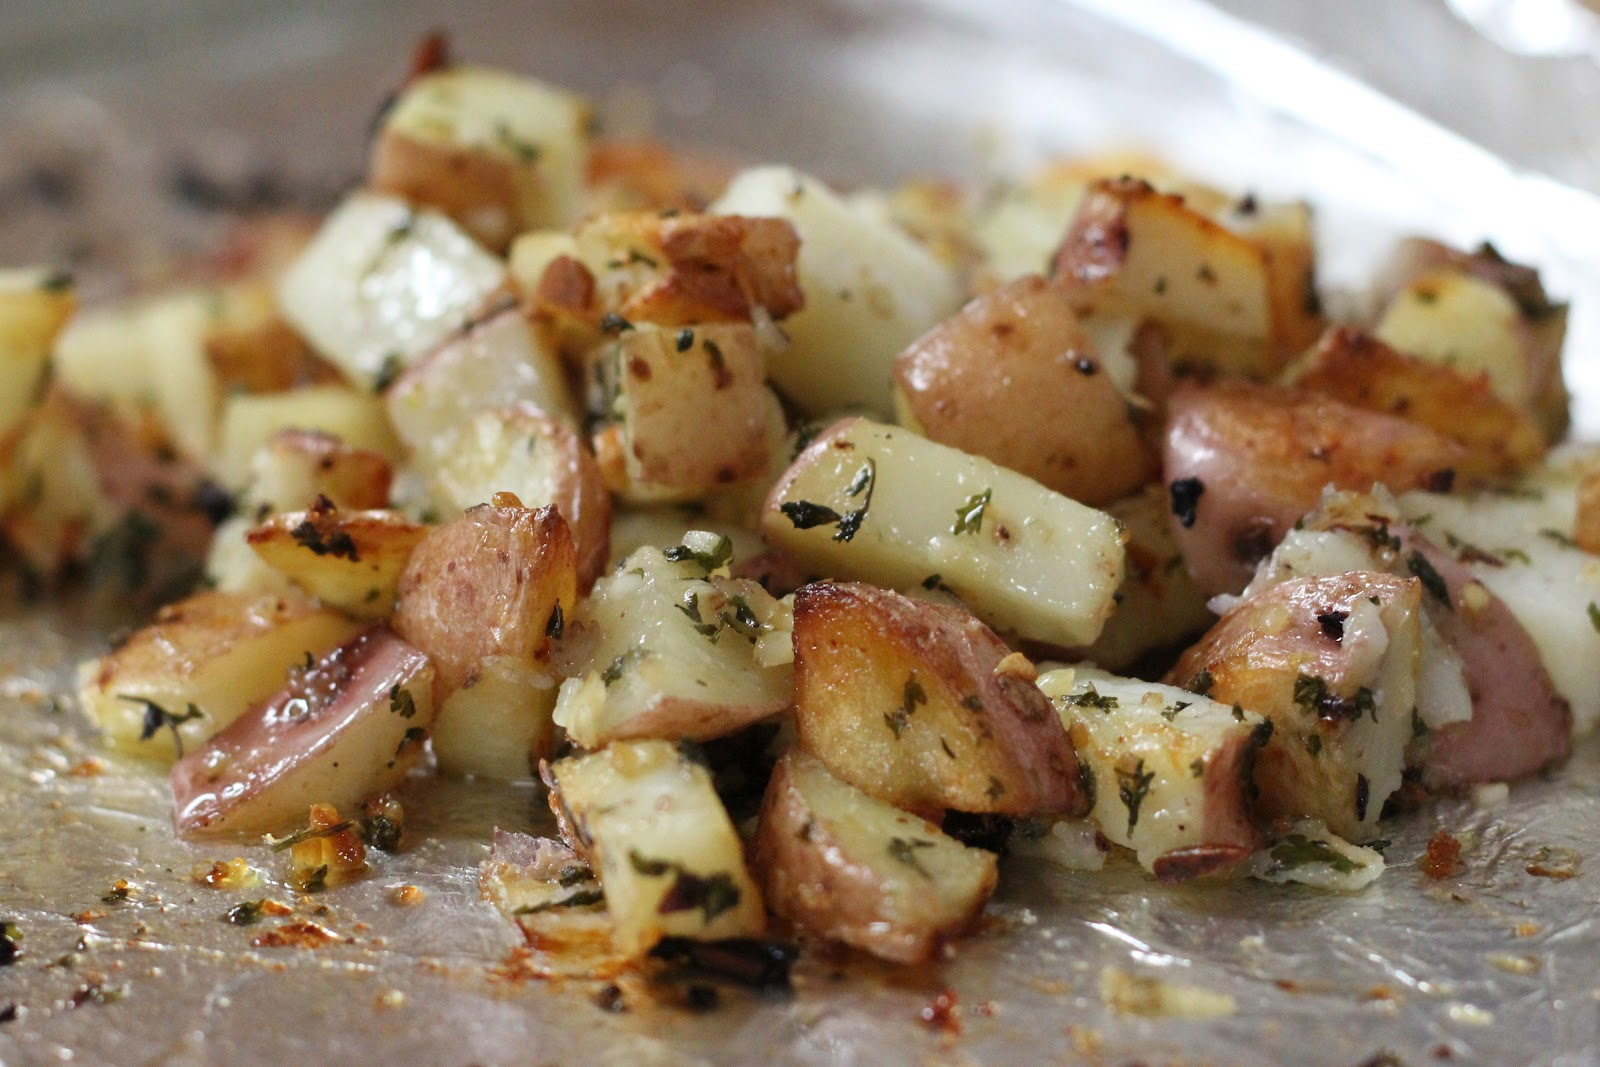 Baked Garlic And Parsley Potatoes